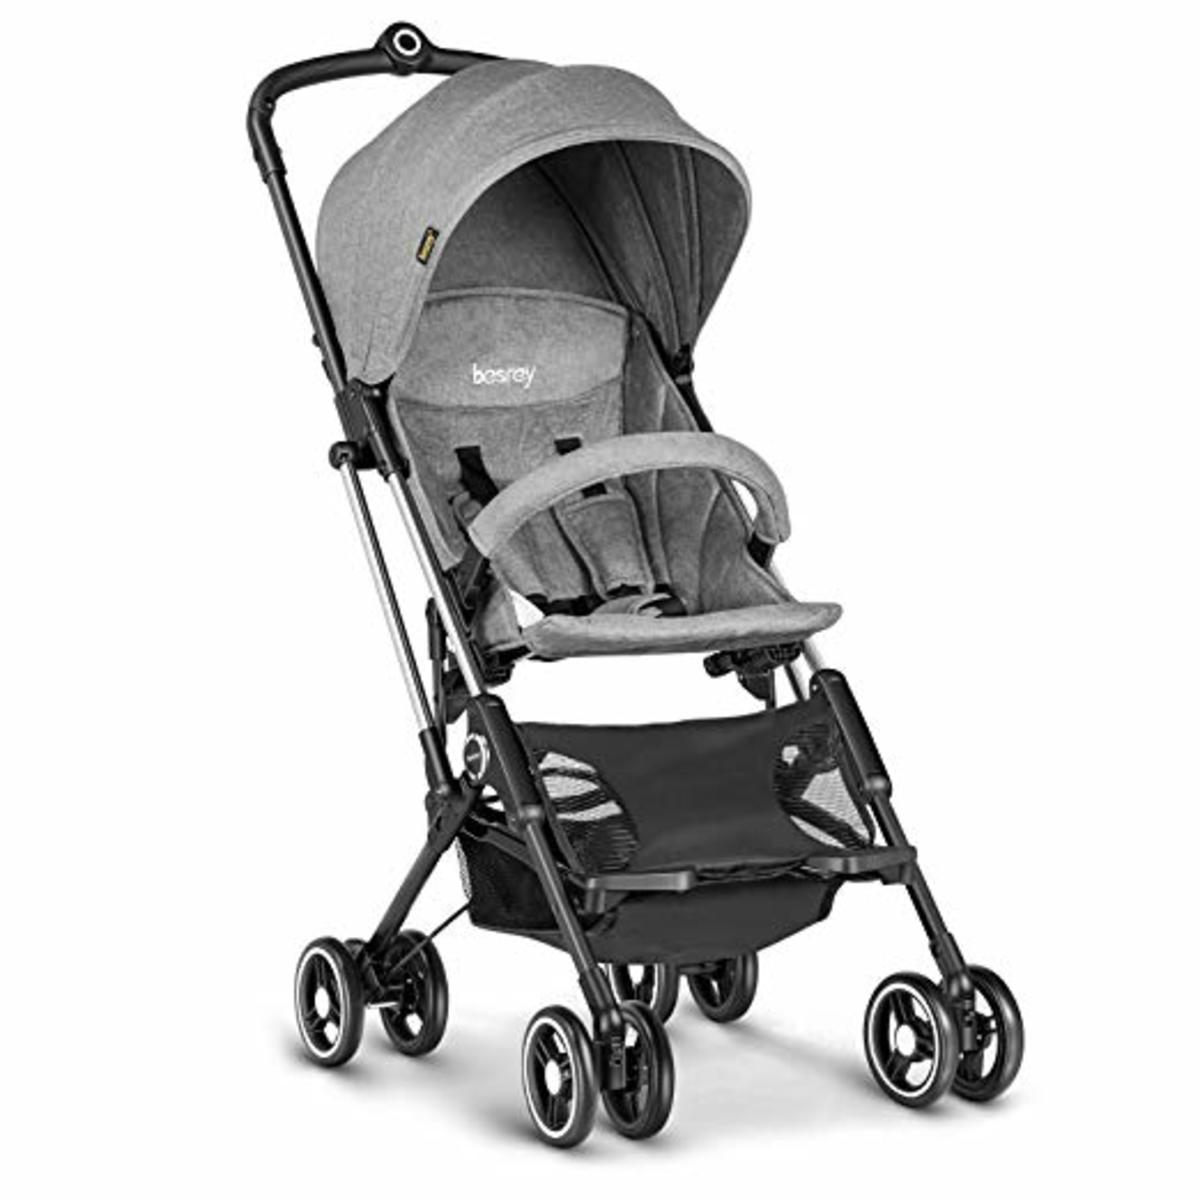 Besrey Airplane Stroller Review: The Best Portable Baby Stroller?